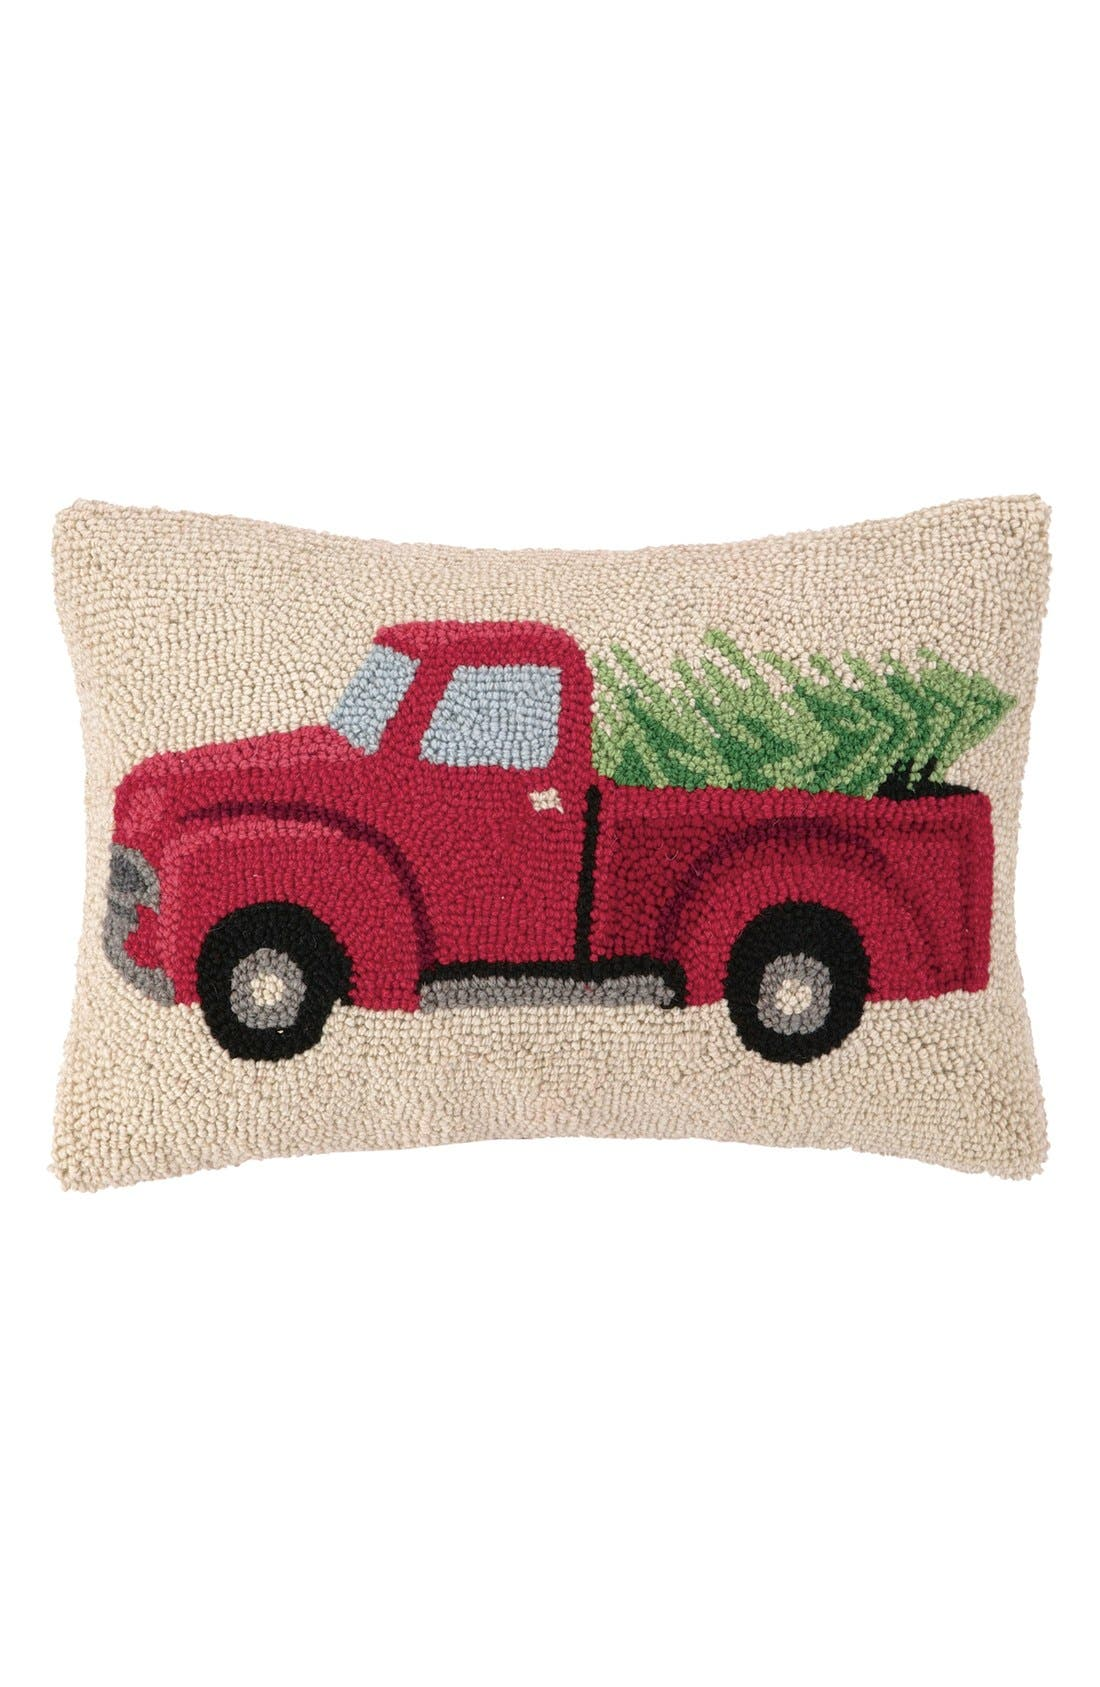 Alternate Image 1 Selected - Peking Handicraft 'Tree Truck' Pillow